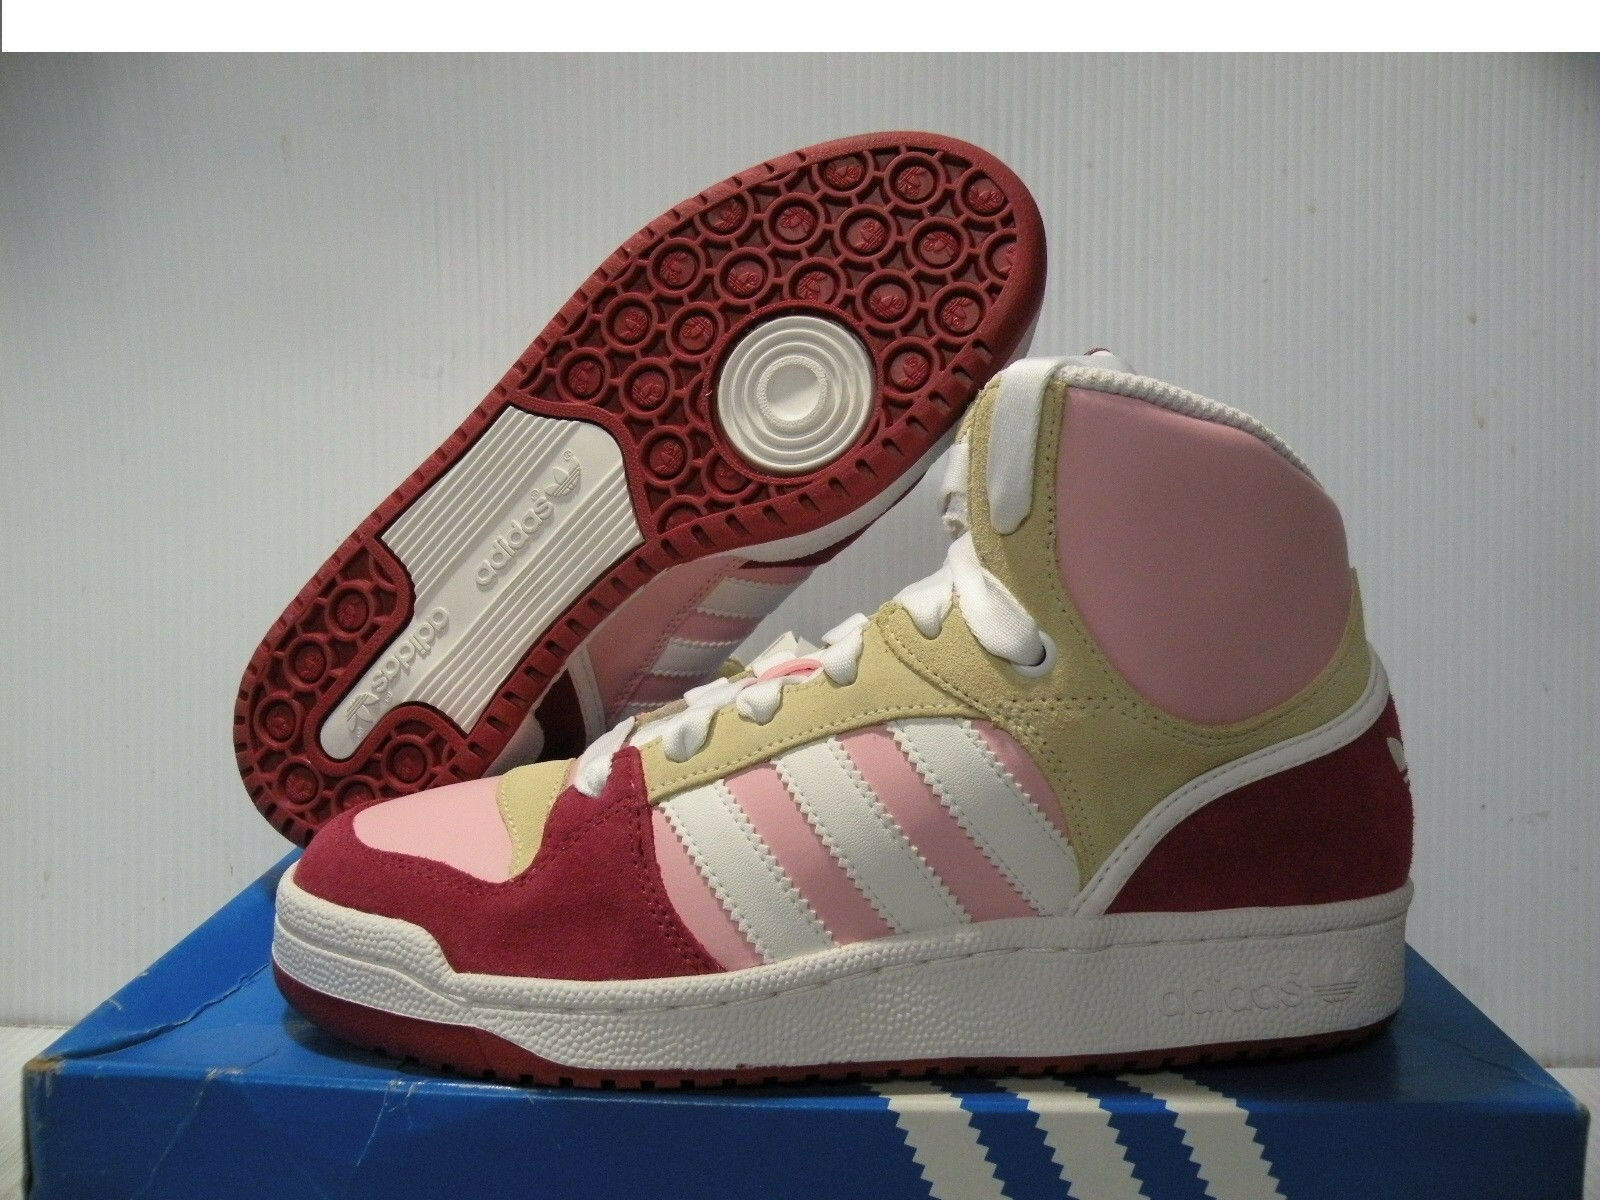 ADIDAS GAME MID SNEAKERS WOMEN SHOES PINK RED G09765 SIZE 9.5 NEW